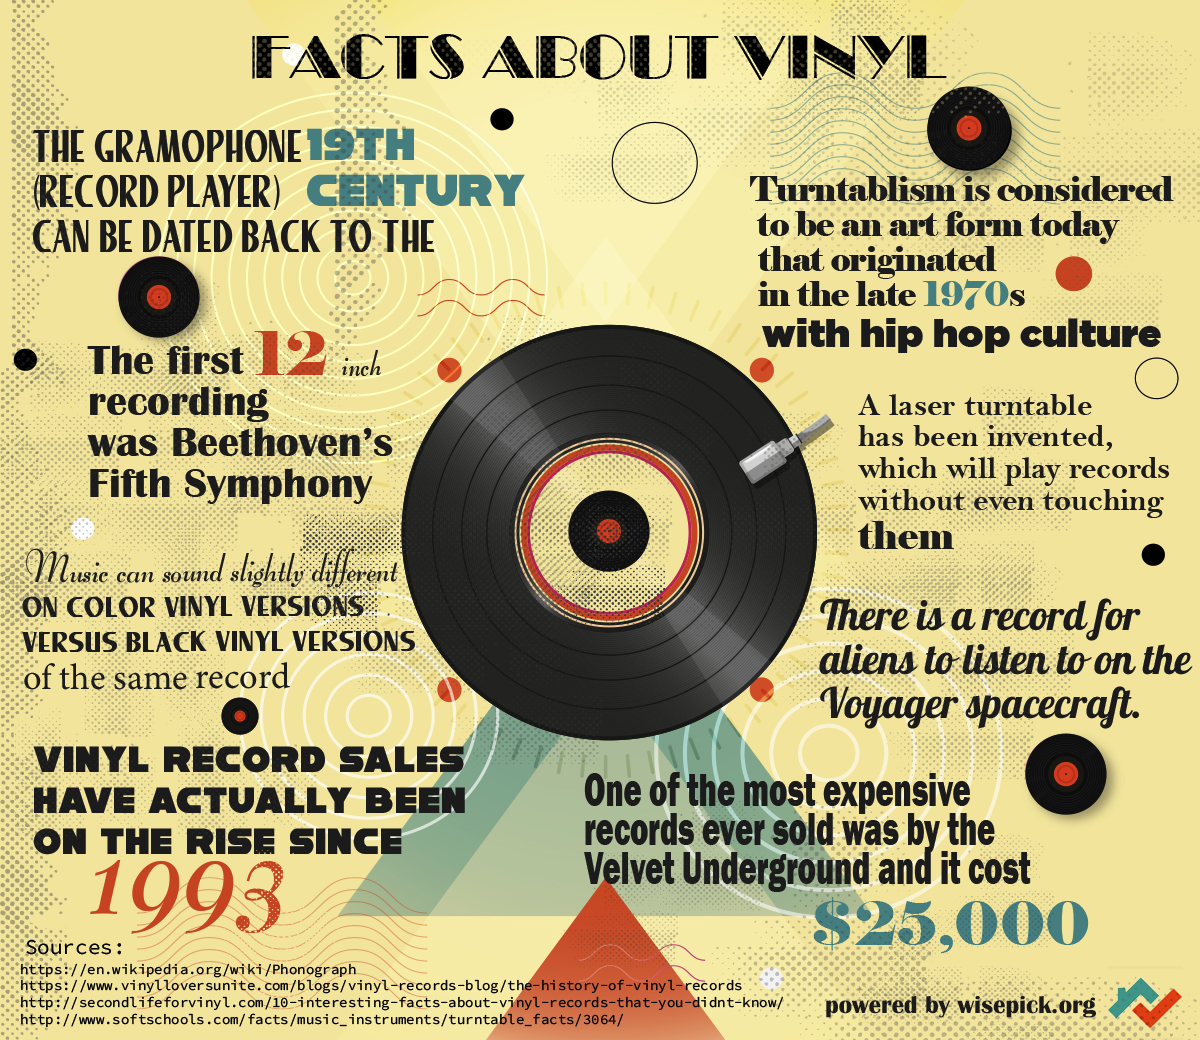 Facts About Vinyl | Infographic Post